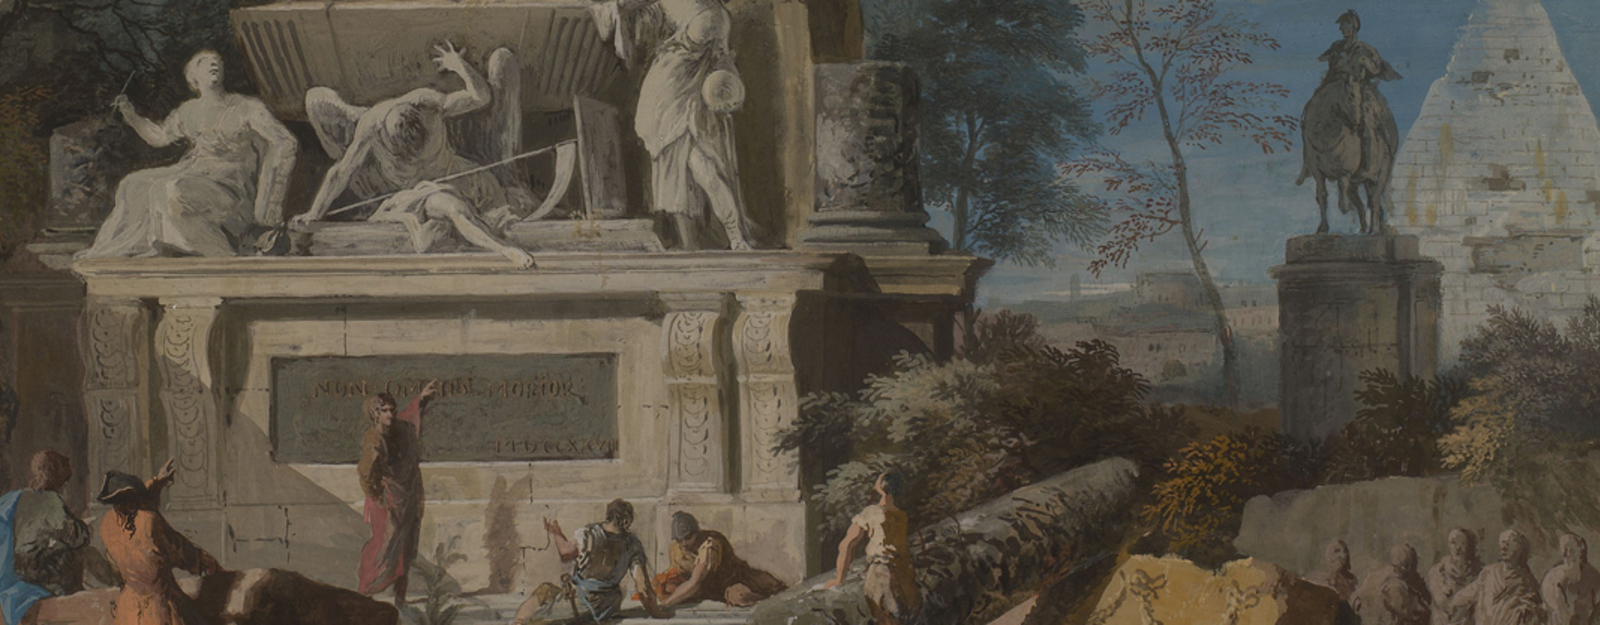 Painting by Marco Ricci - Landscape with an Allegorical Monument to Newton